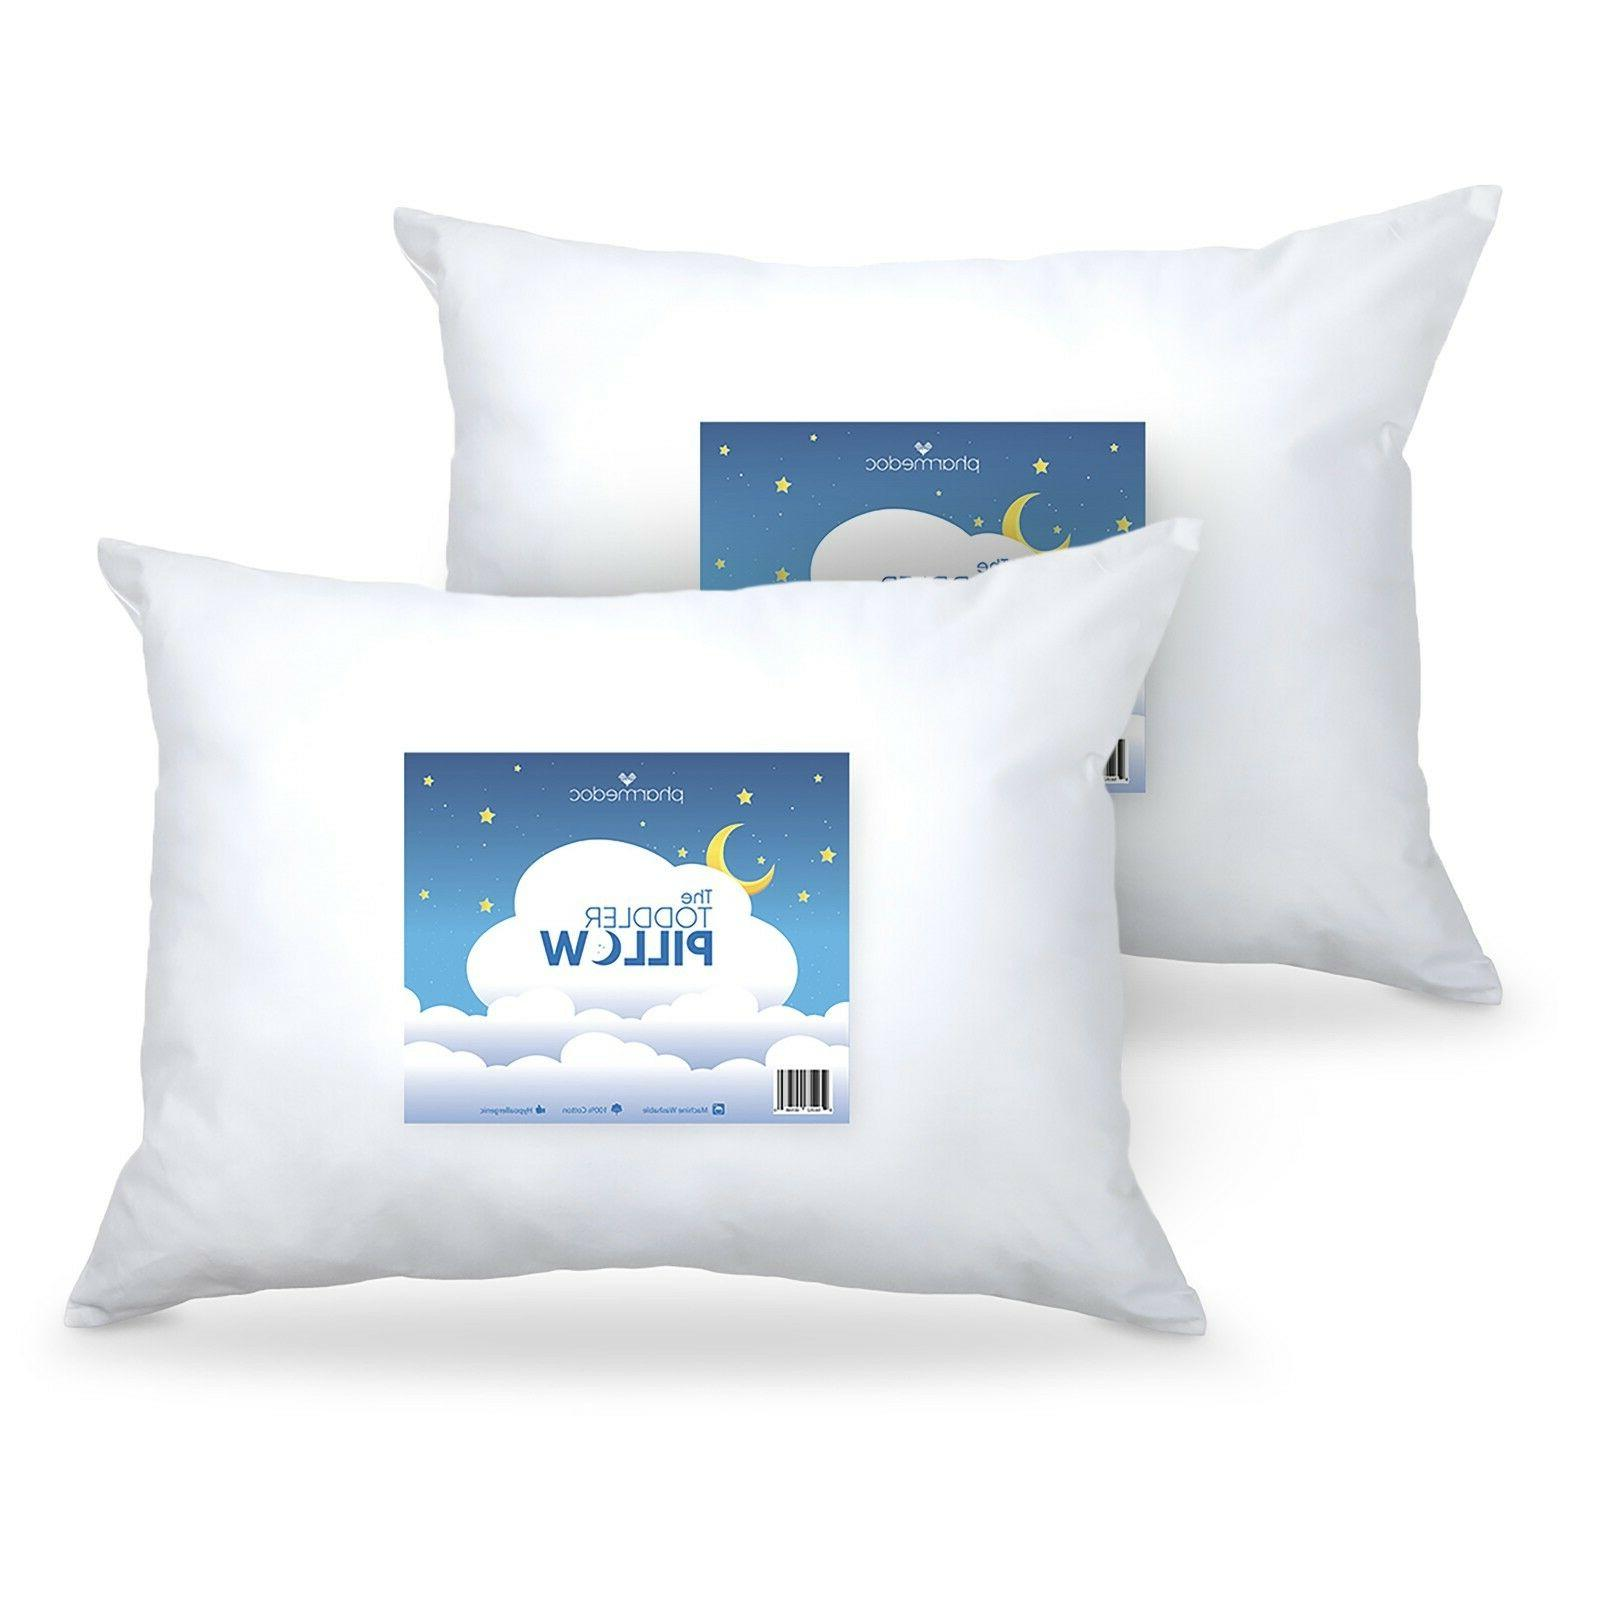 2 Pack Toddler Pillows – Breathable Little Pillow for Chil